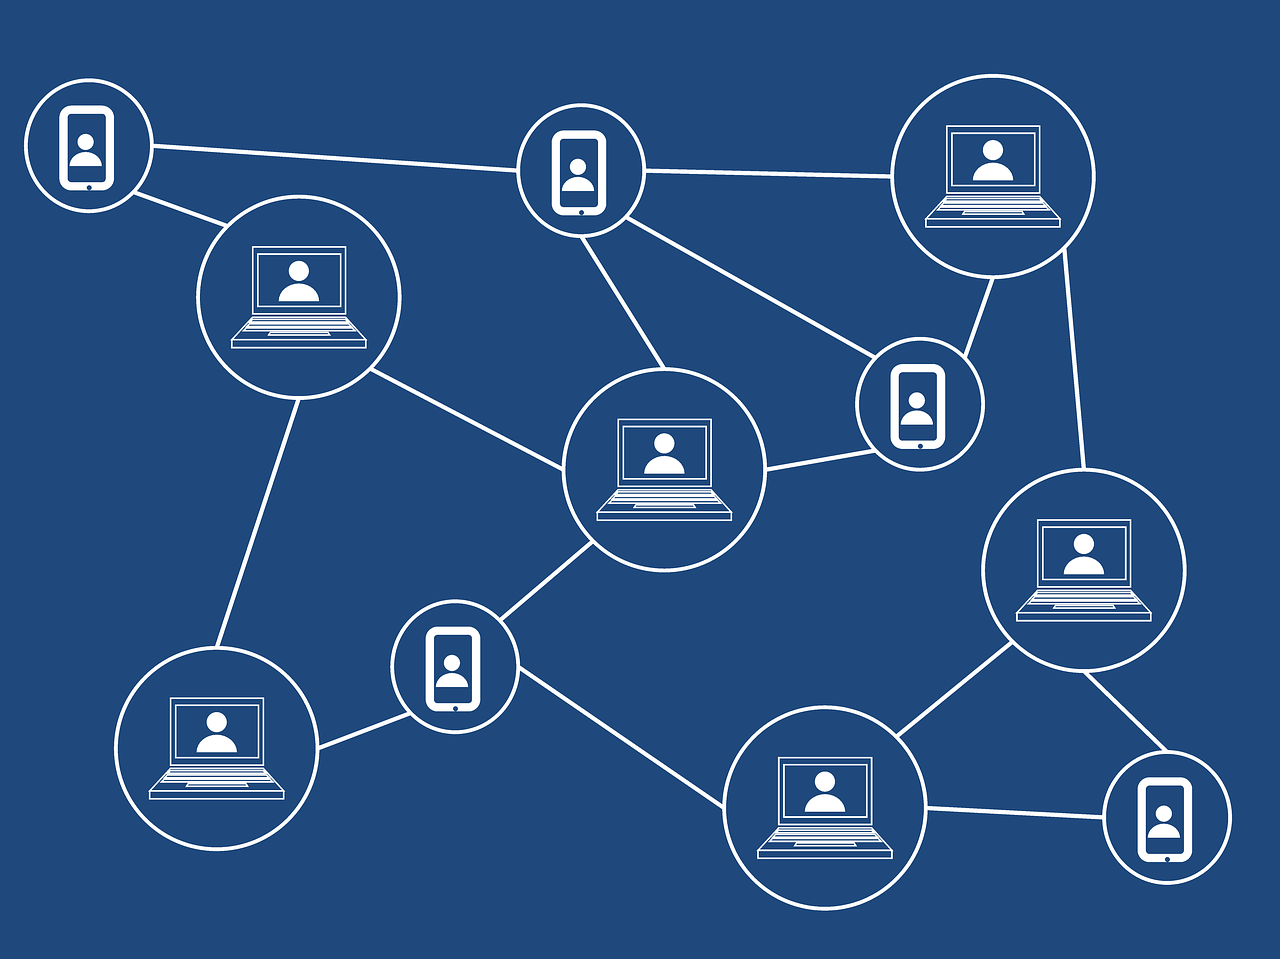 How Blockchain Technology Could Help Prevent Medical Fraud